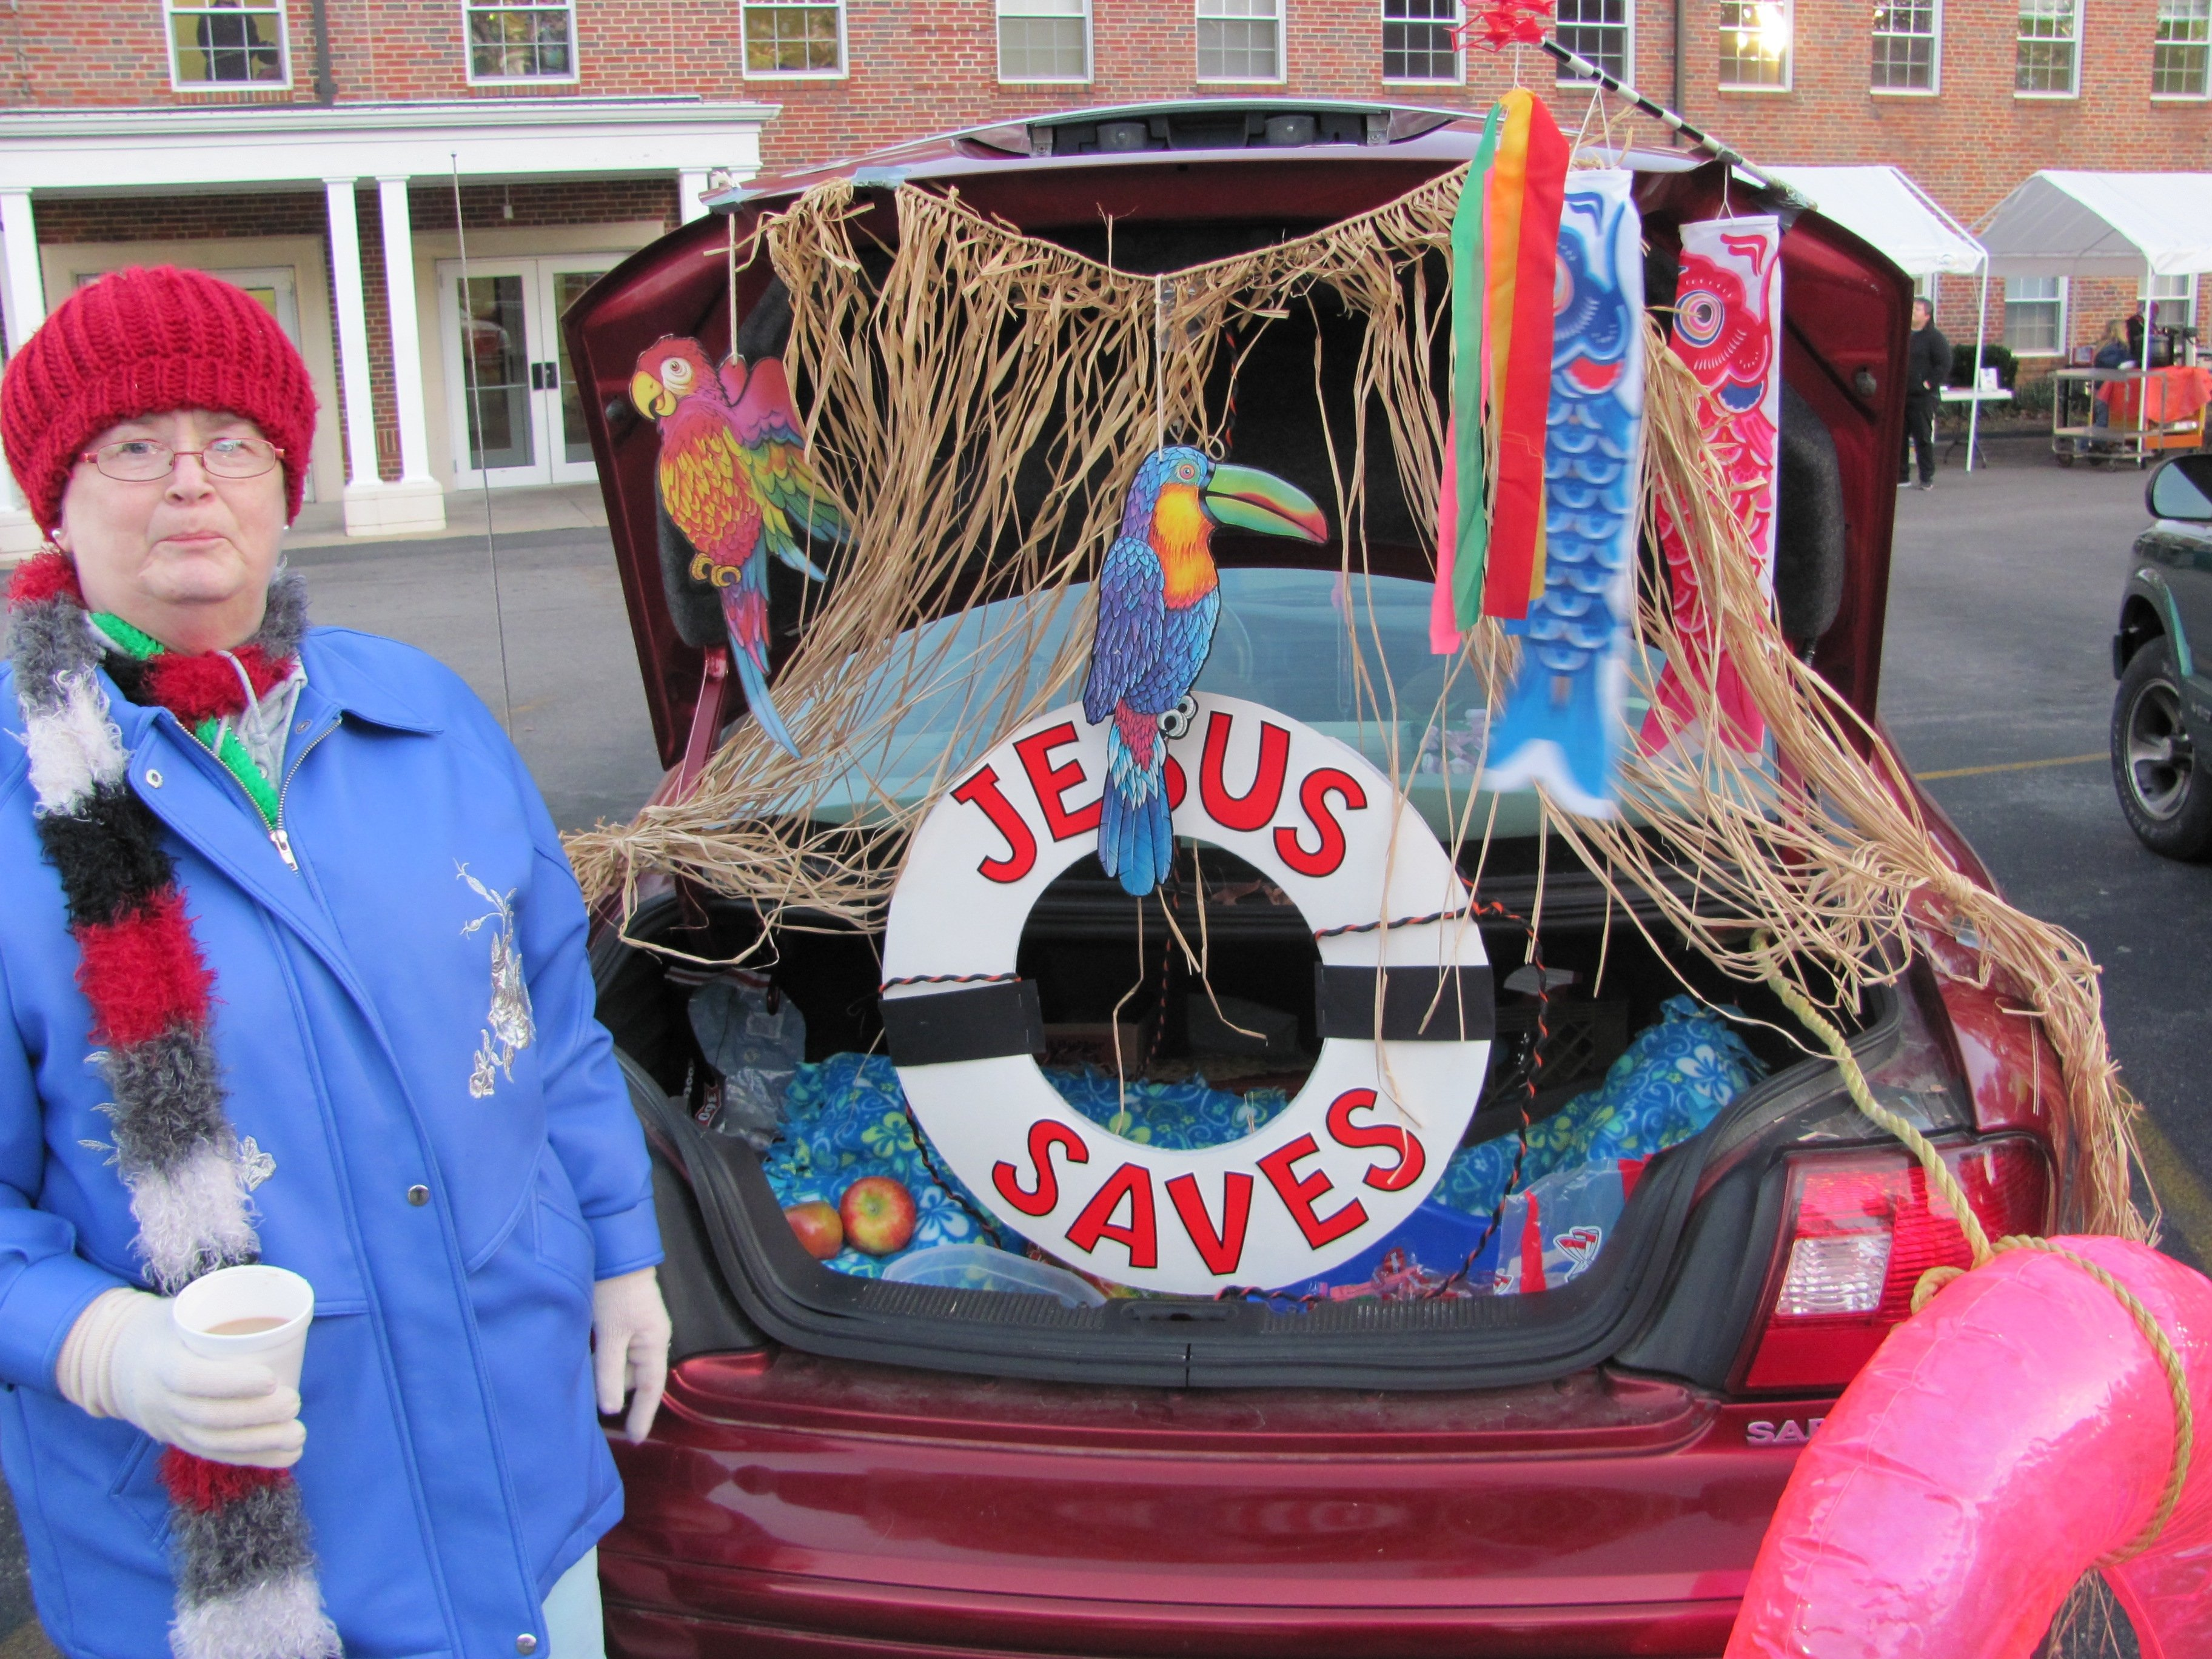 10 Ideal Christian Trunk Or Treat Ideas remarkable trunk or treat decorating ideas on fall carnival trunk or 1 2020